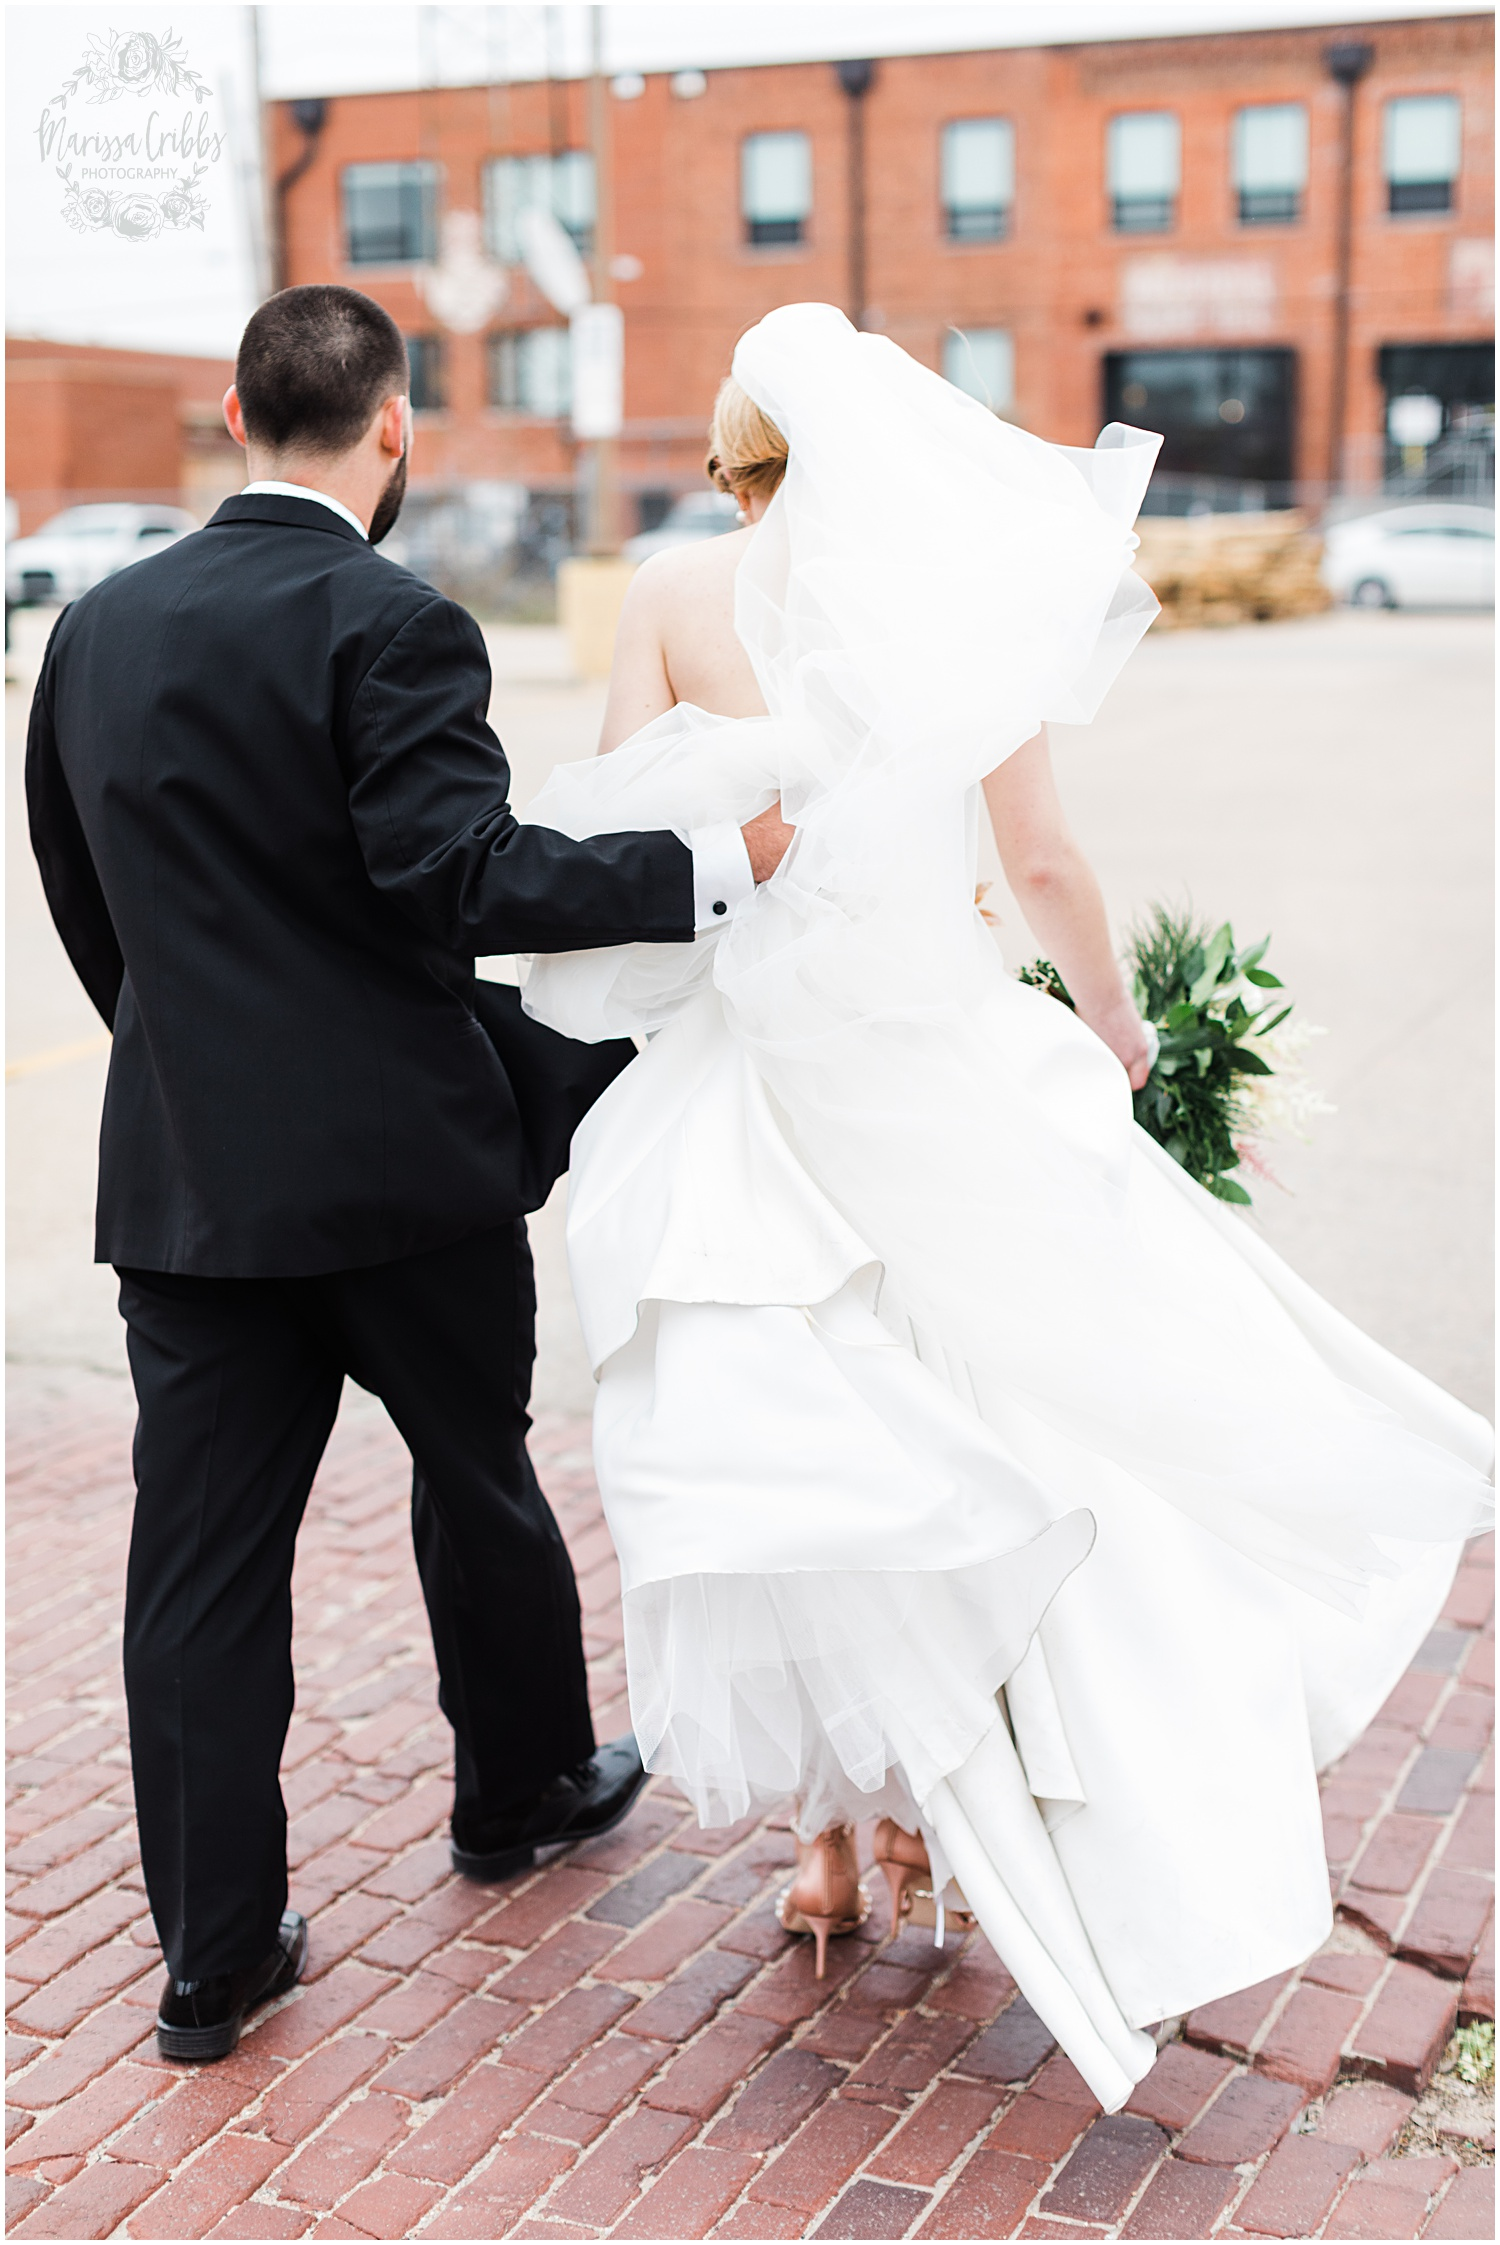 ABBY & CHARLIE WEDDING | THE HUDSON EVENT SPACE WEDDING | MARISSA CRIBBS PHOTOGRAPHY_7545.jpg